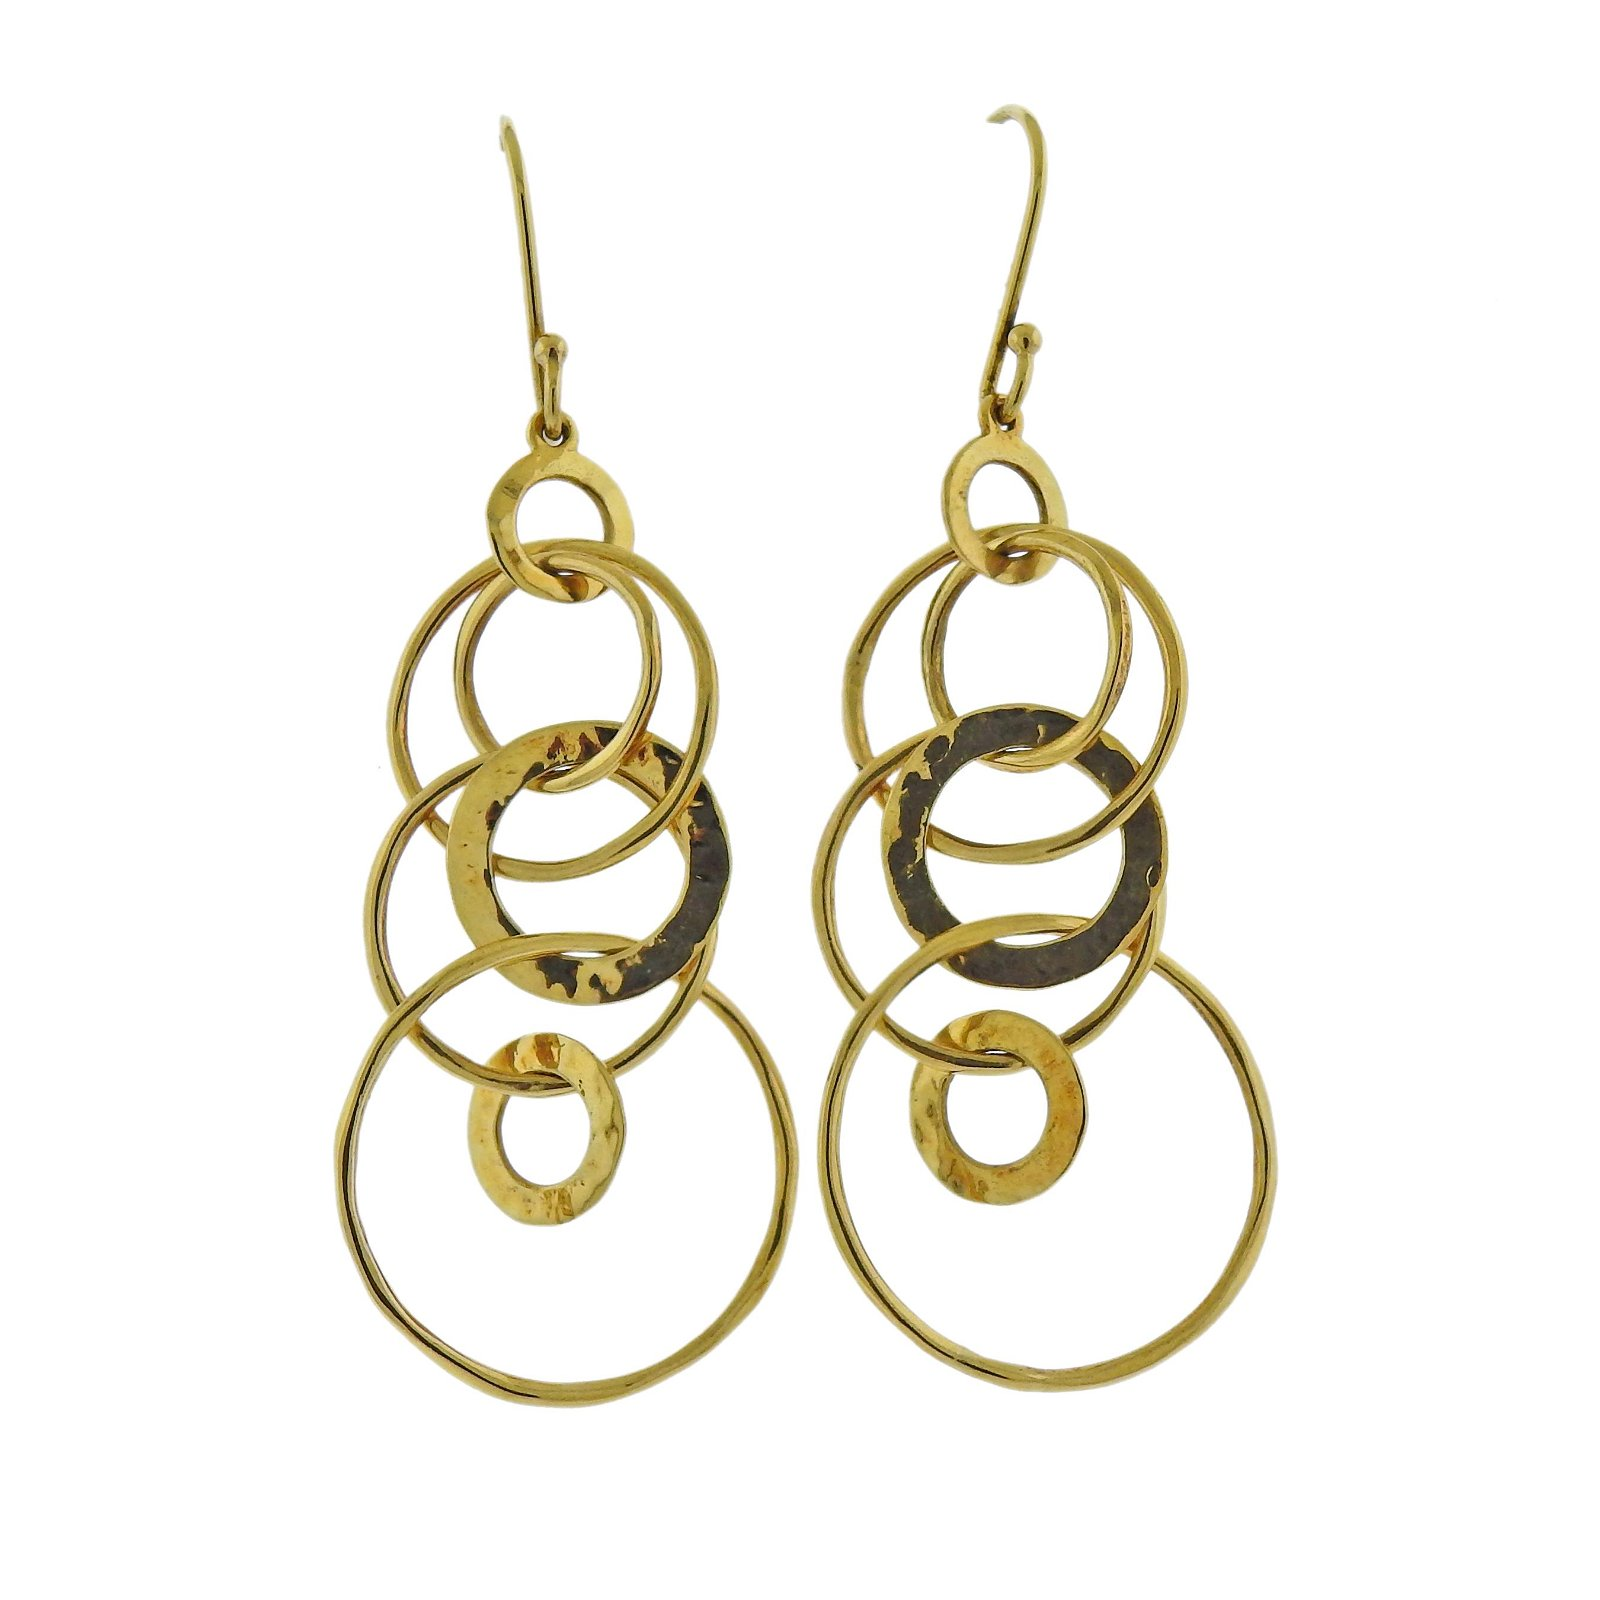 Ippolita 18k Gold Mini Hammered Jet Set Drop Earrings